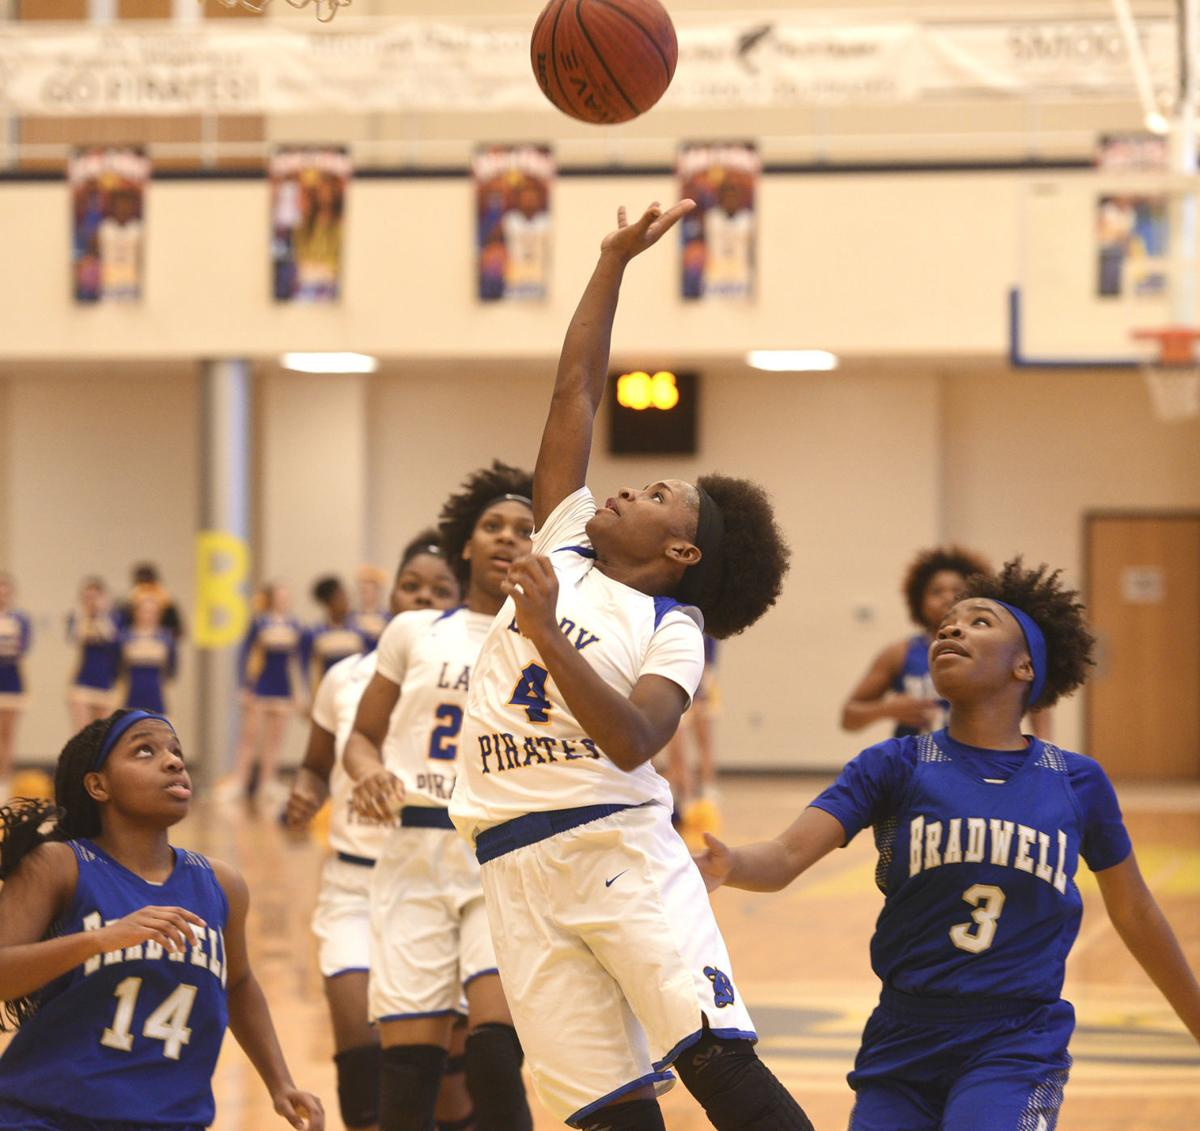 020719_bhs bradwell girls basketball 11